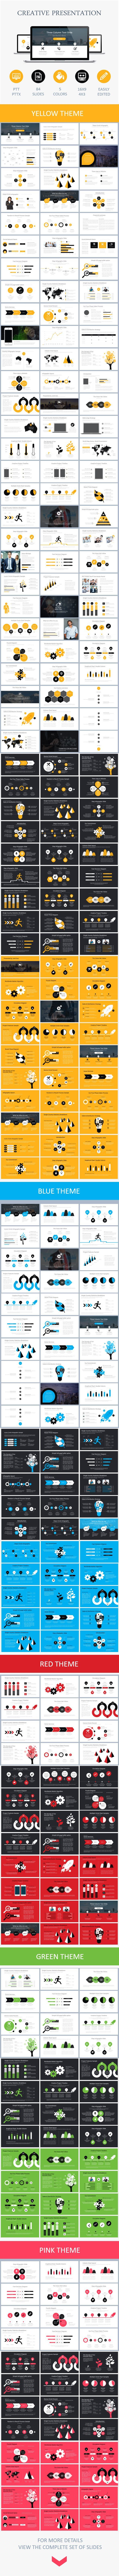 Creative Presentation (Powerpoint Templates) Image 20Preview 20